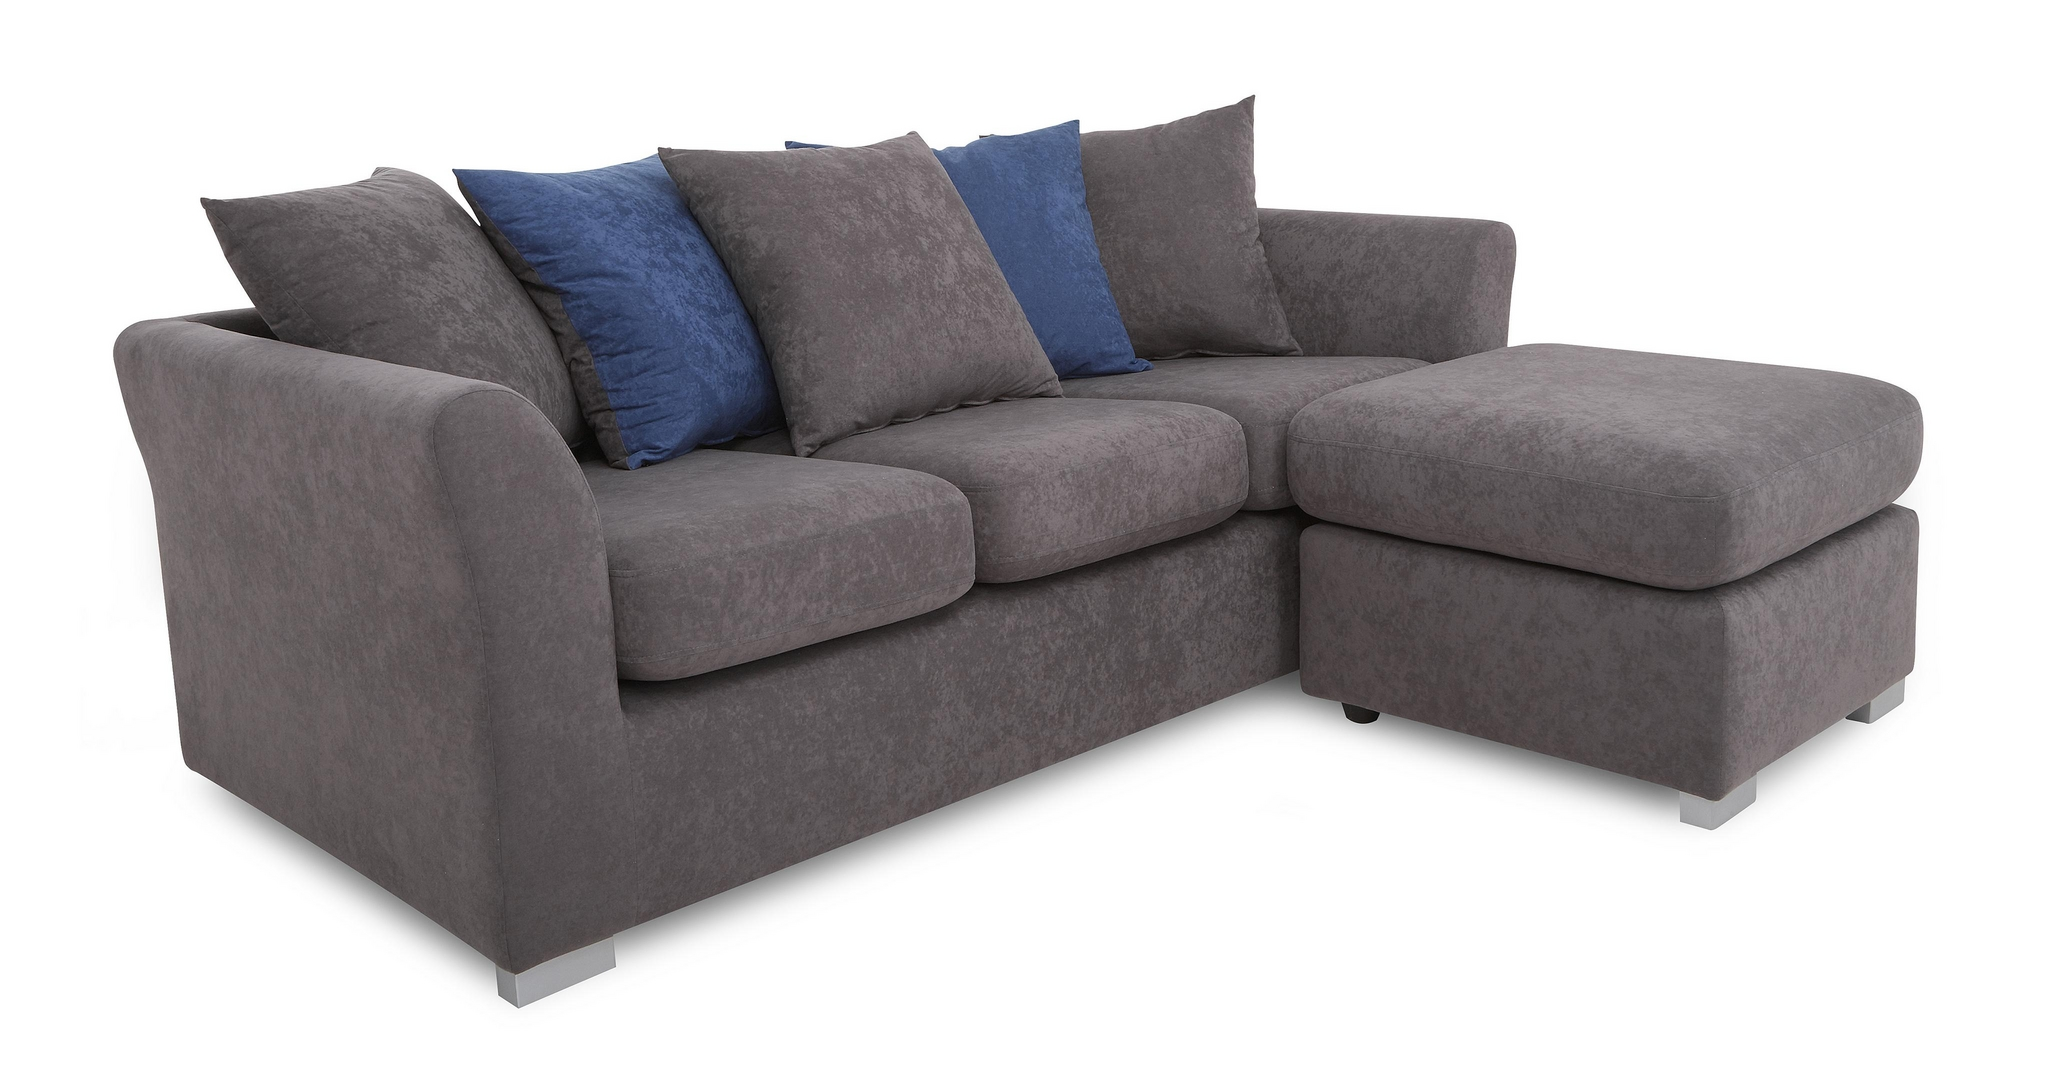 DFS Studio Fabric Corner Sofa Left Or Right Hand Facing EBay